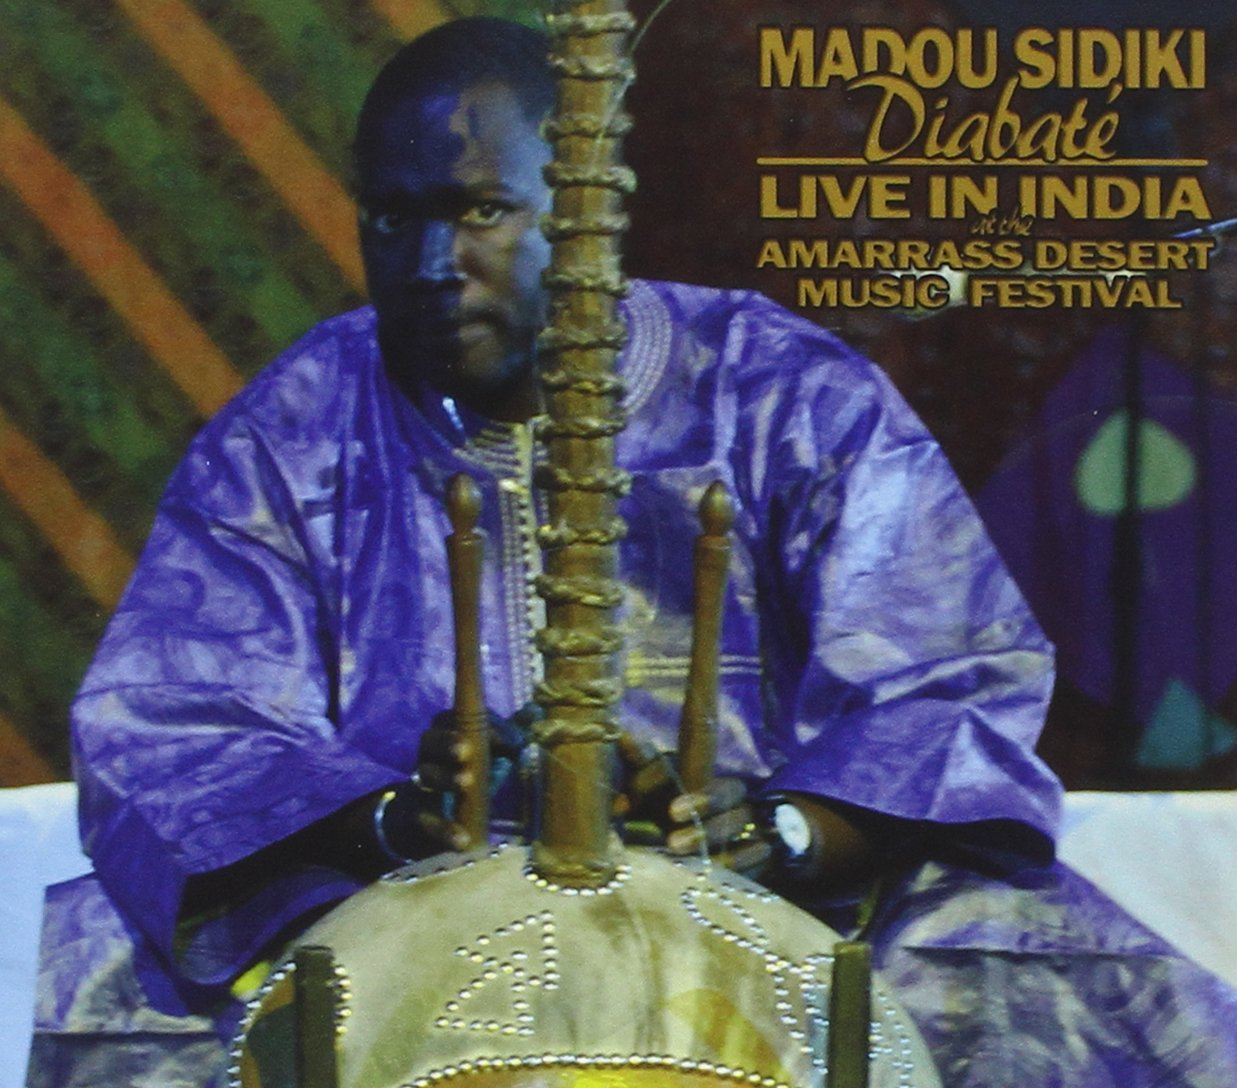 Live in India at the Amarrass Desert Music Festival